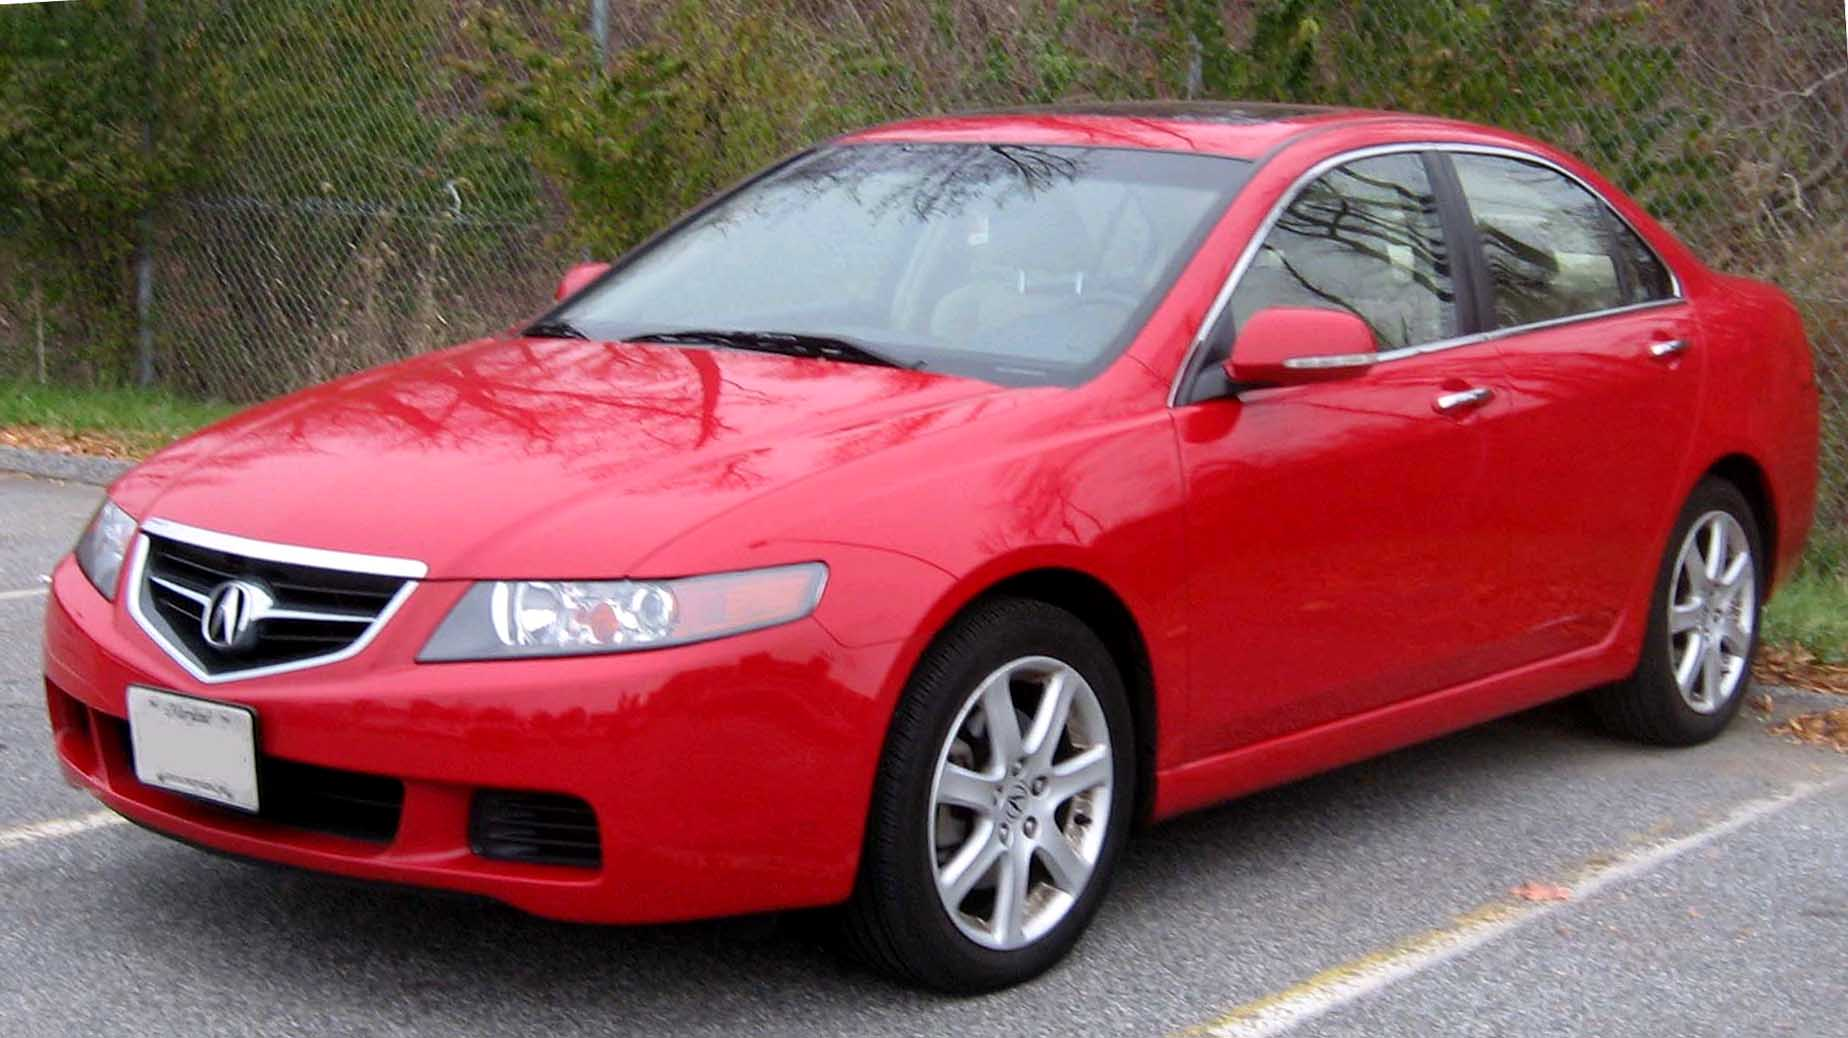 Acura TSX red #1